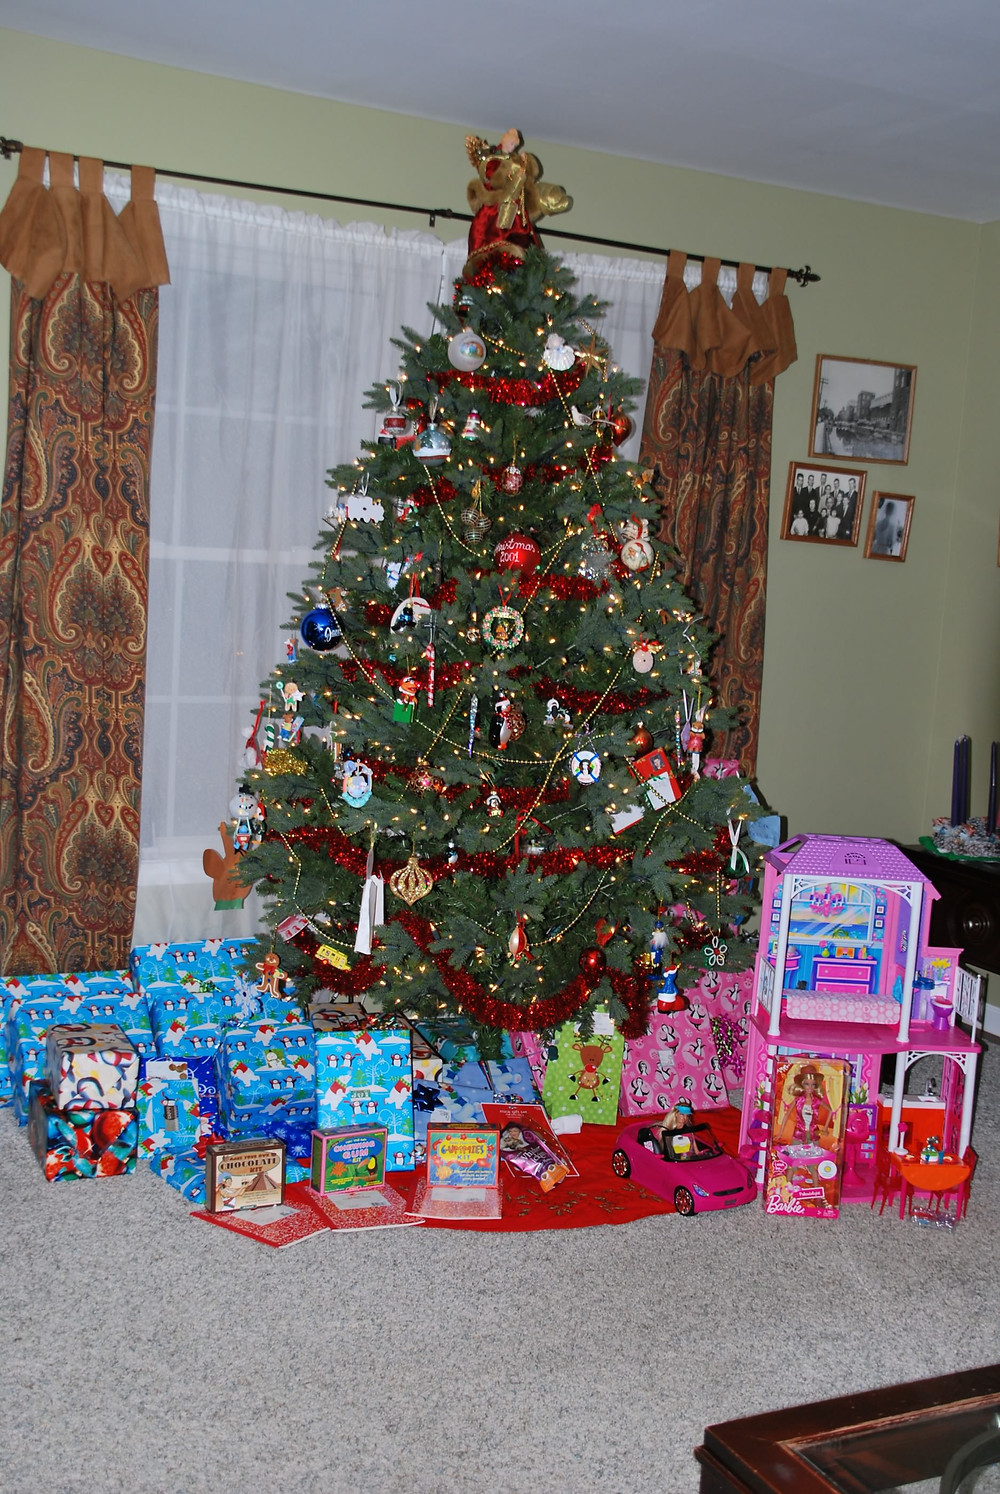 Christmas tree with wrapped presents, science games, and Barbie house and car